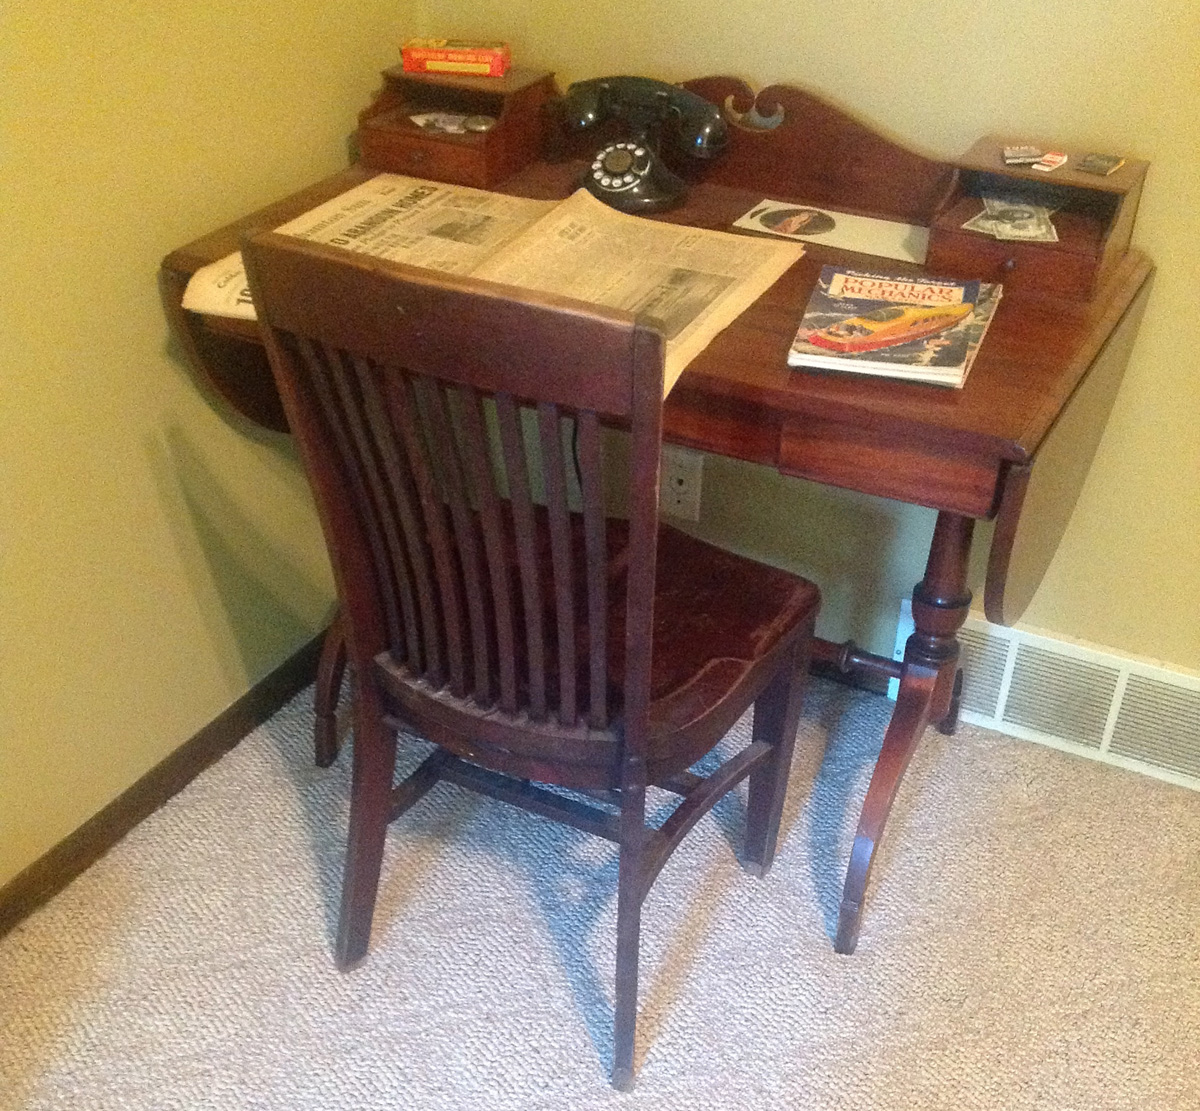 A Desk Chair And A Half Moon Table Uncategorized The